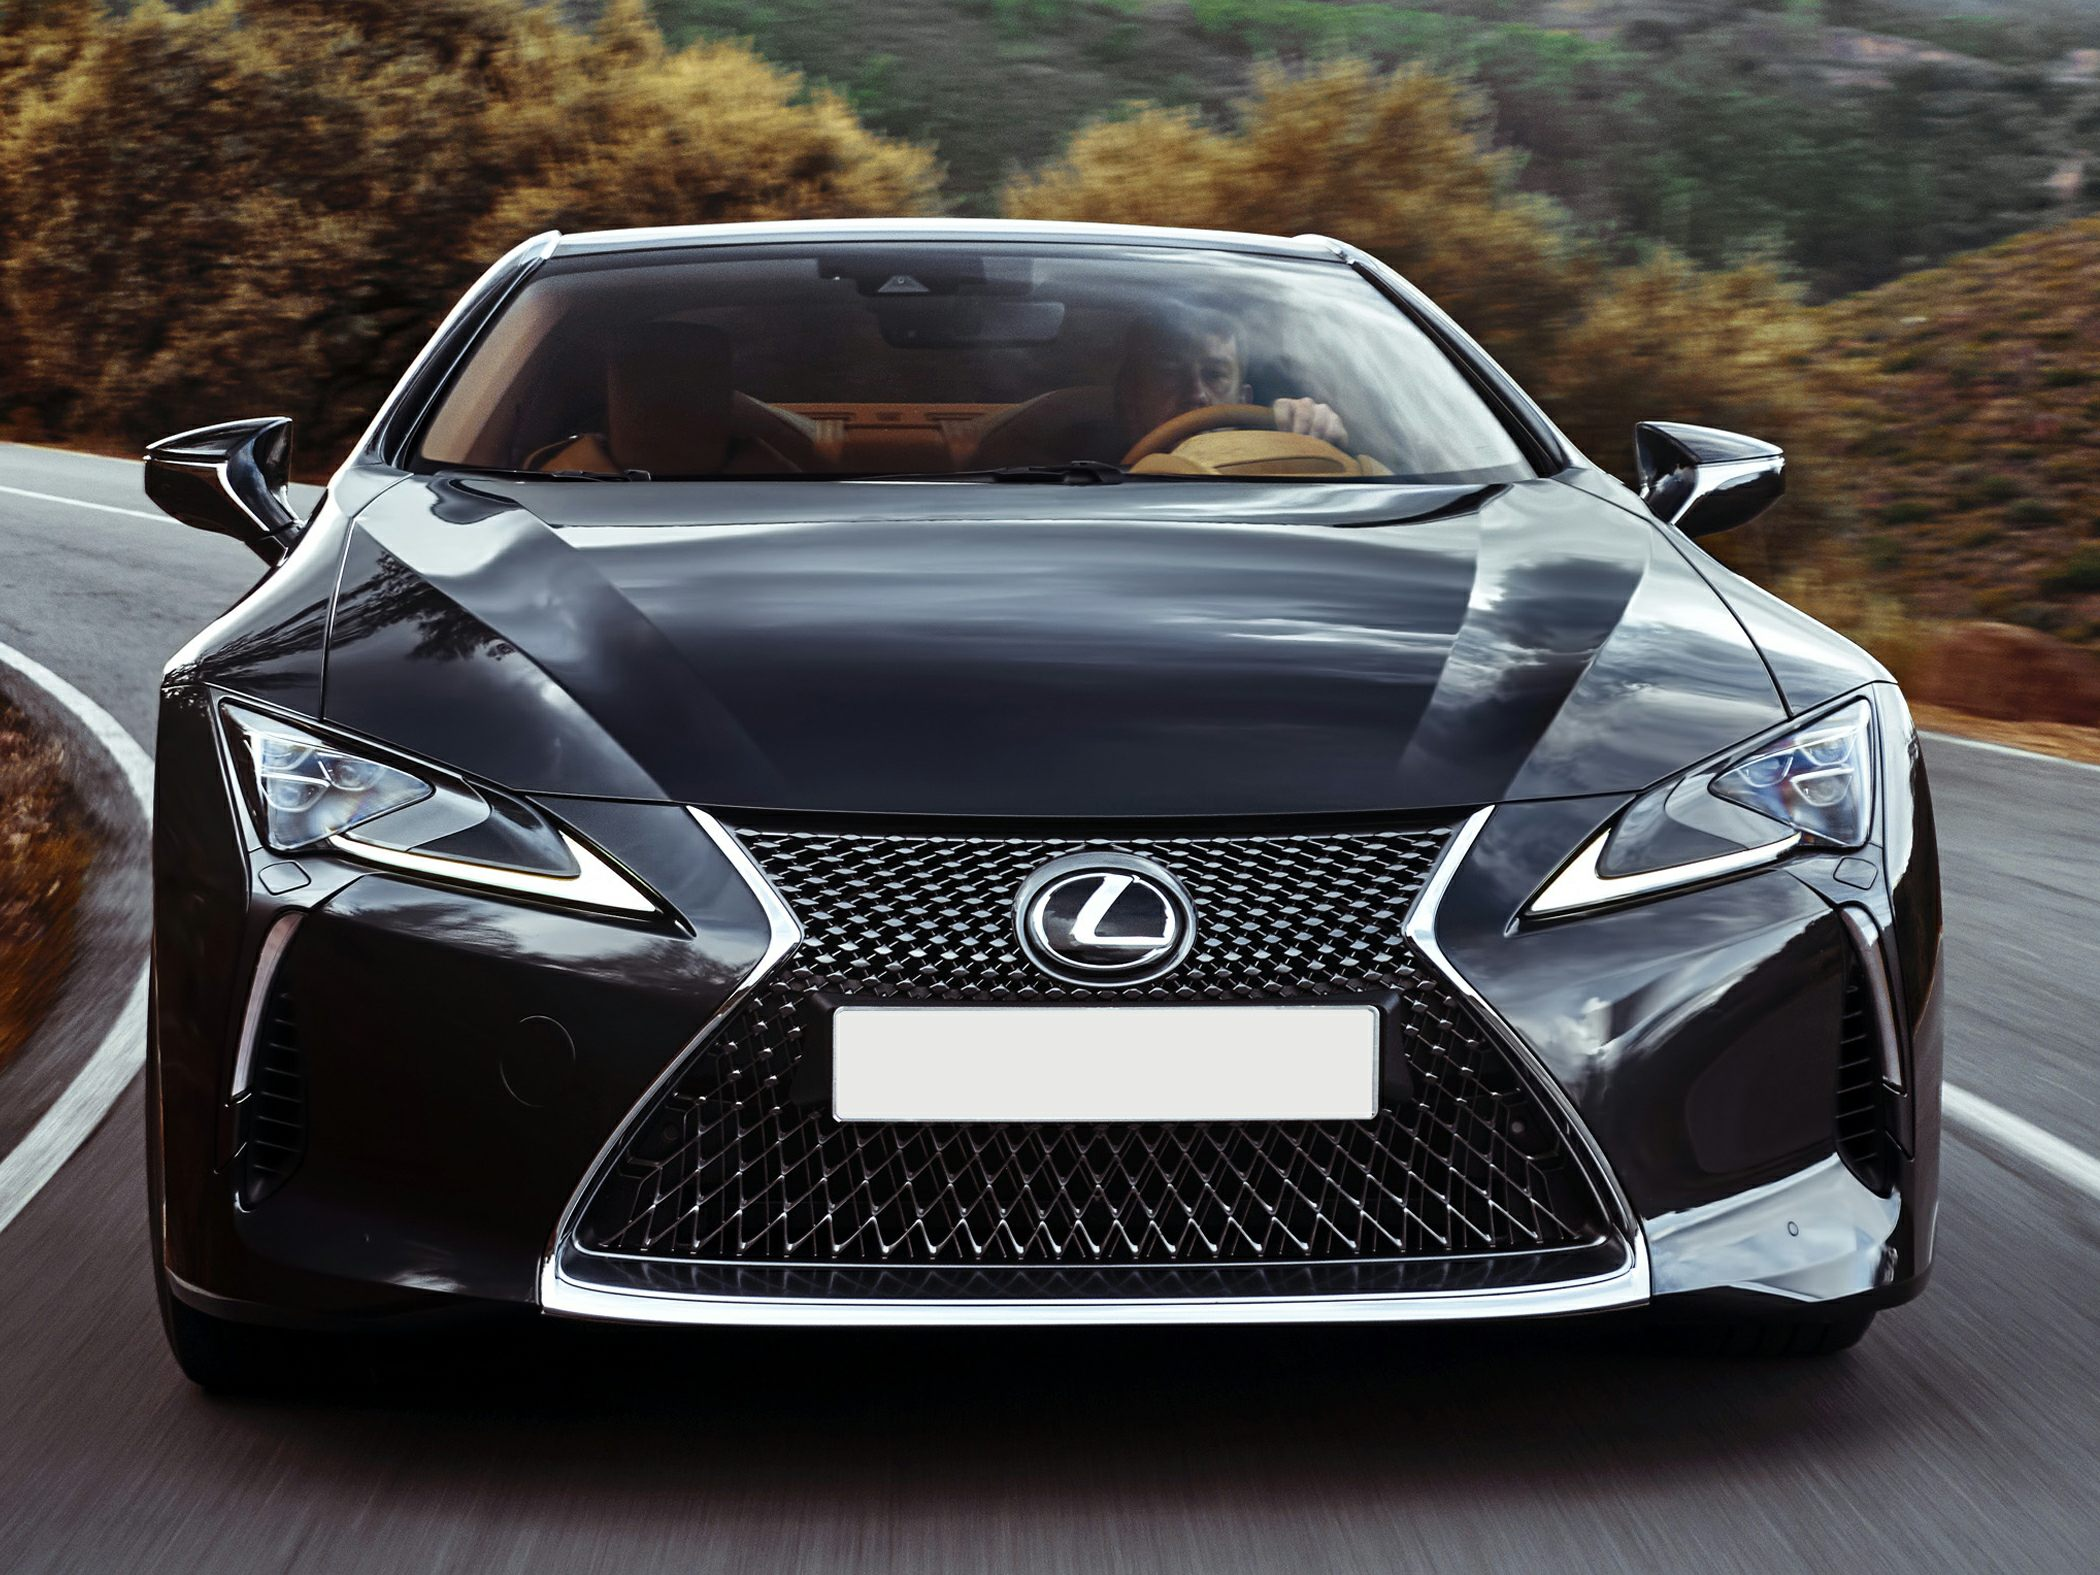 luxury tokyo leasing sedan lexus featured car premium cars century img